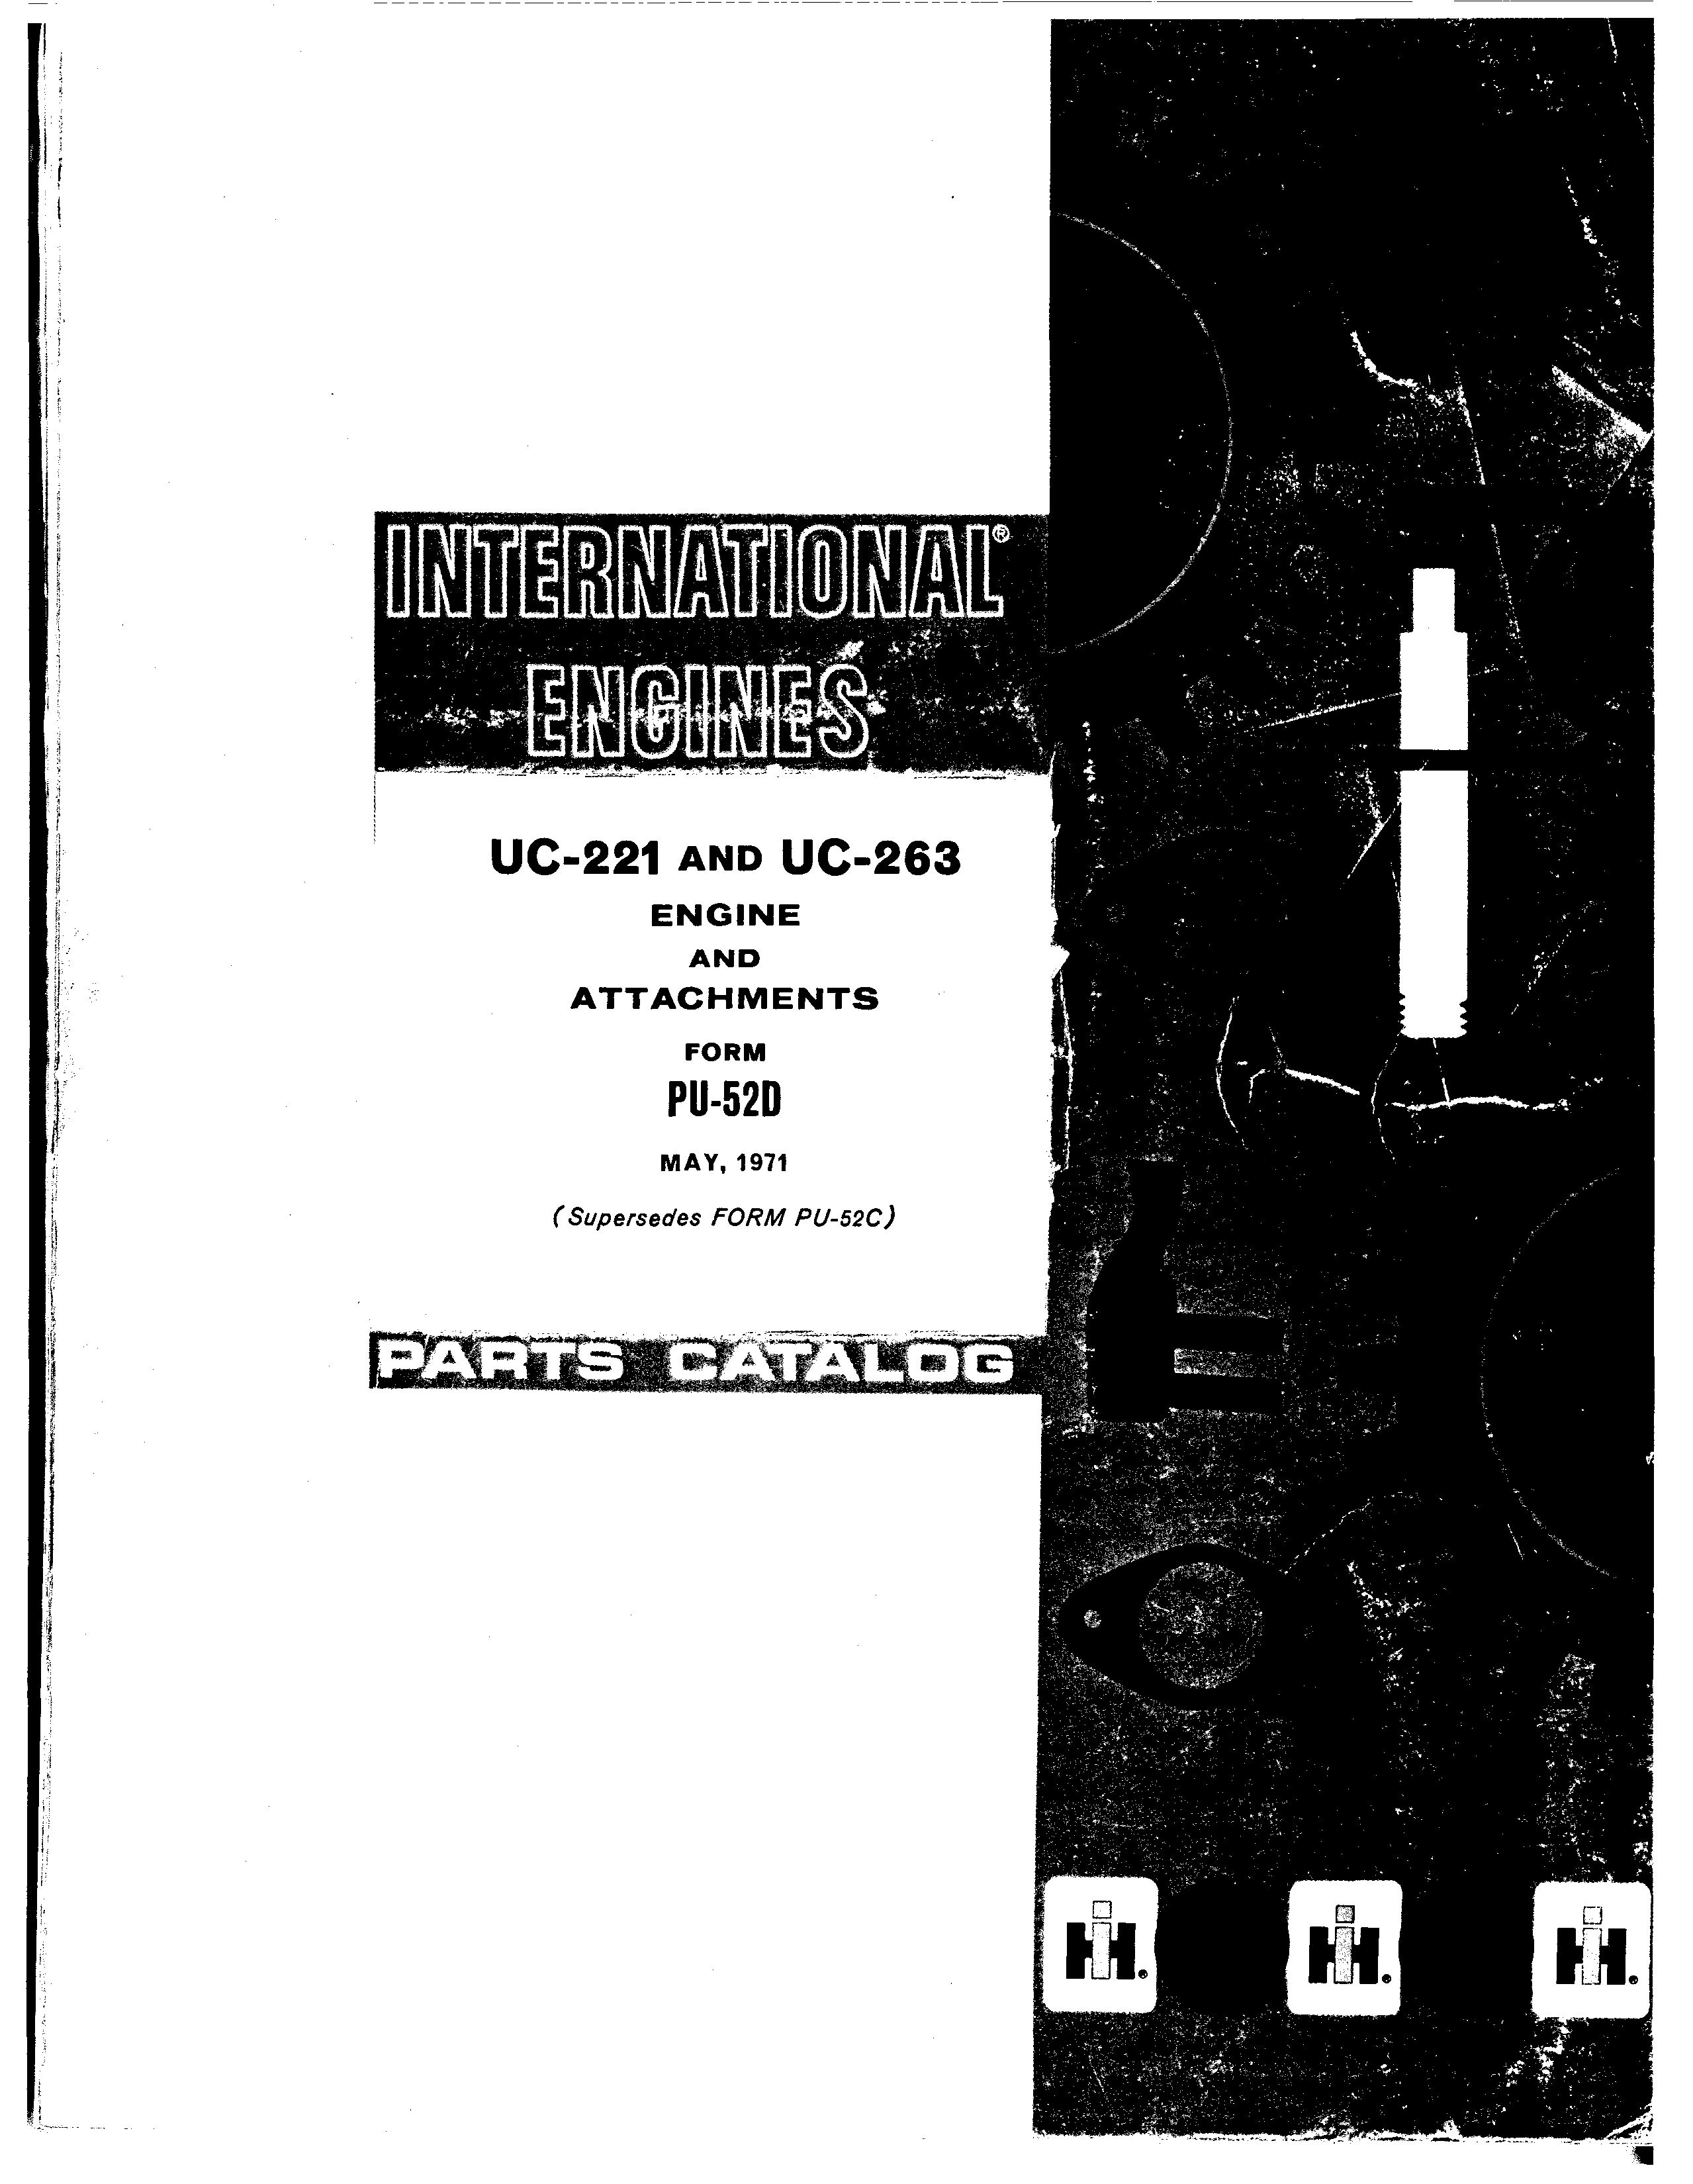 International Uc 221 And Uc 263 Parts Catalog For Engine And Attachments Download In 2020 Parts Catalog Repair And Maintenance Catalog